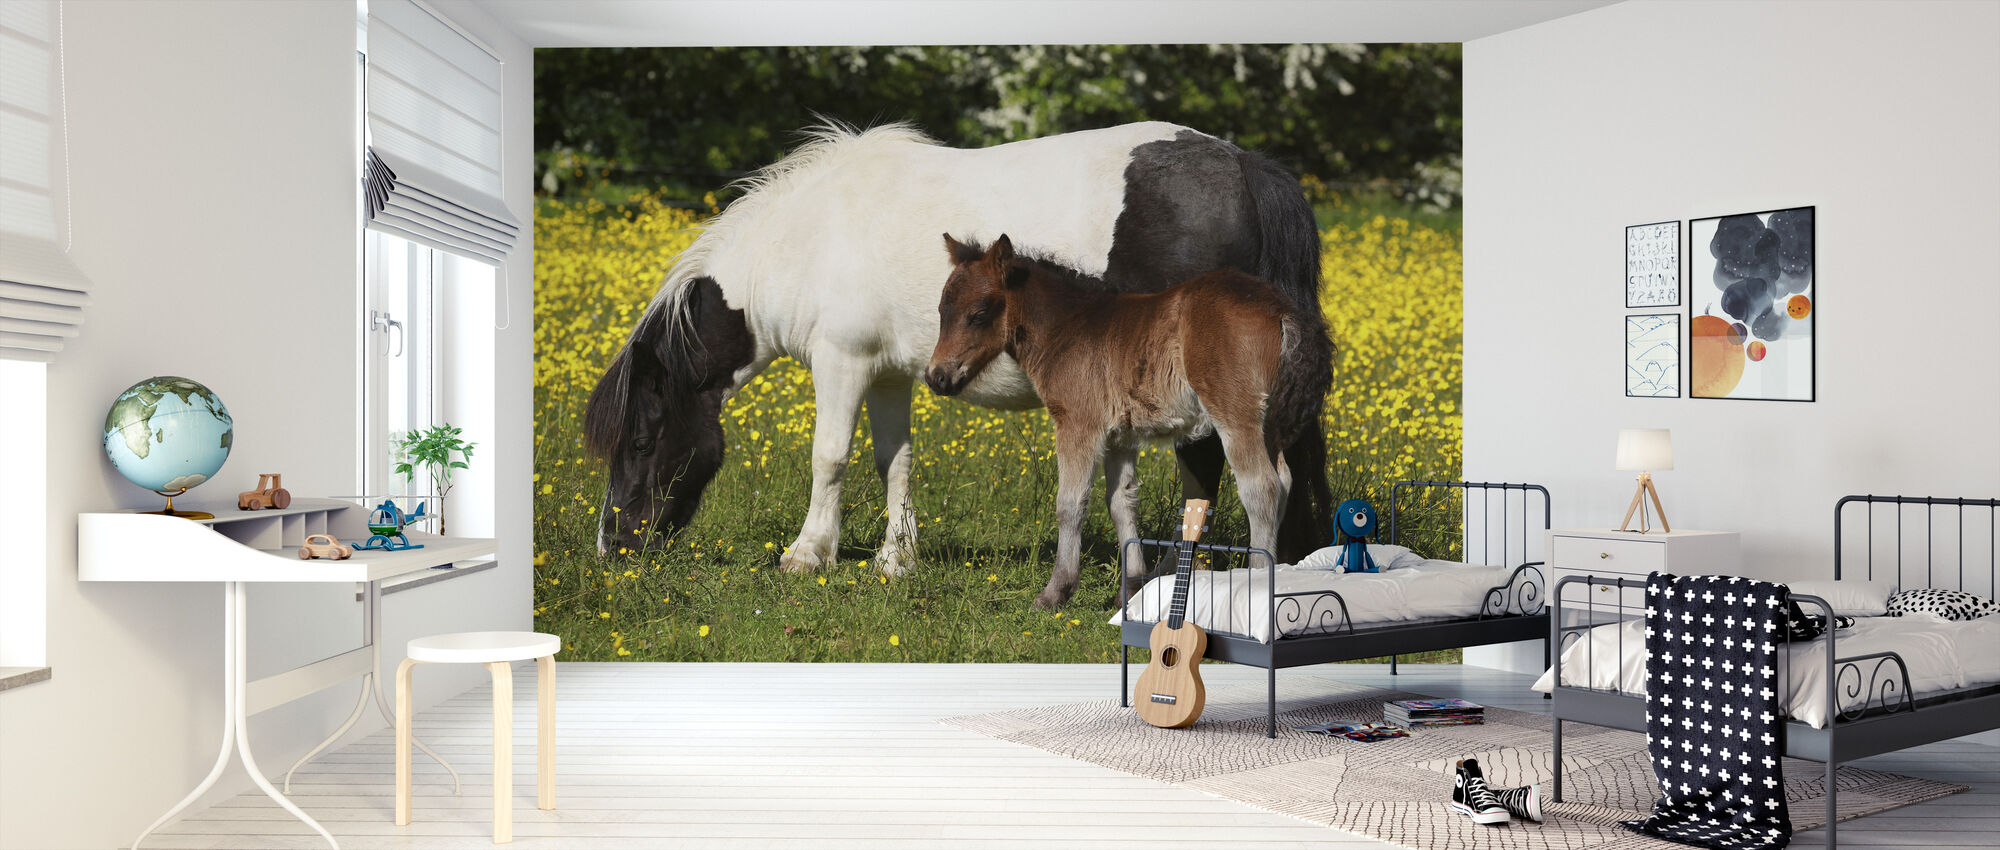 Shetland Ponies Foal and Mother - Wallpaper - Kids Room